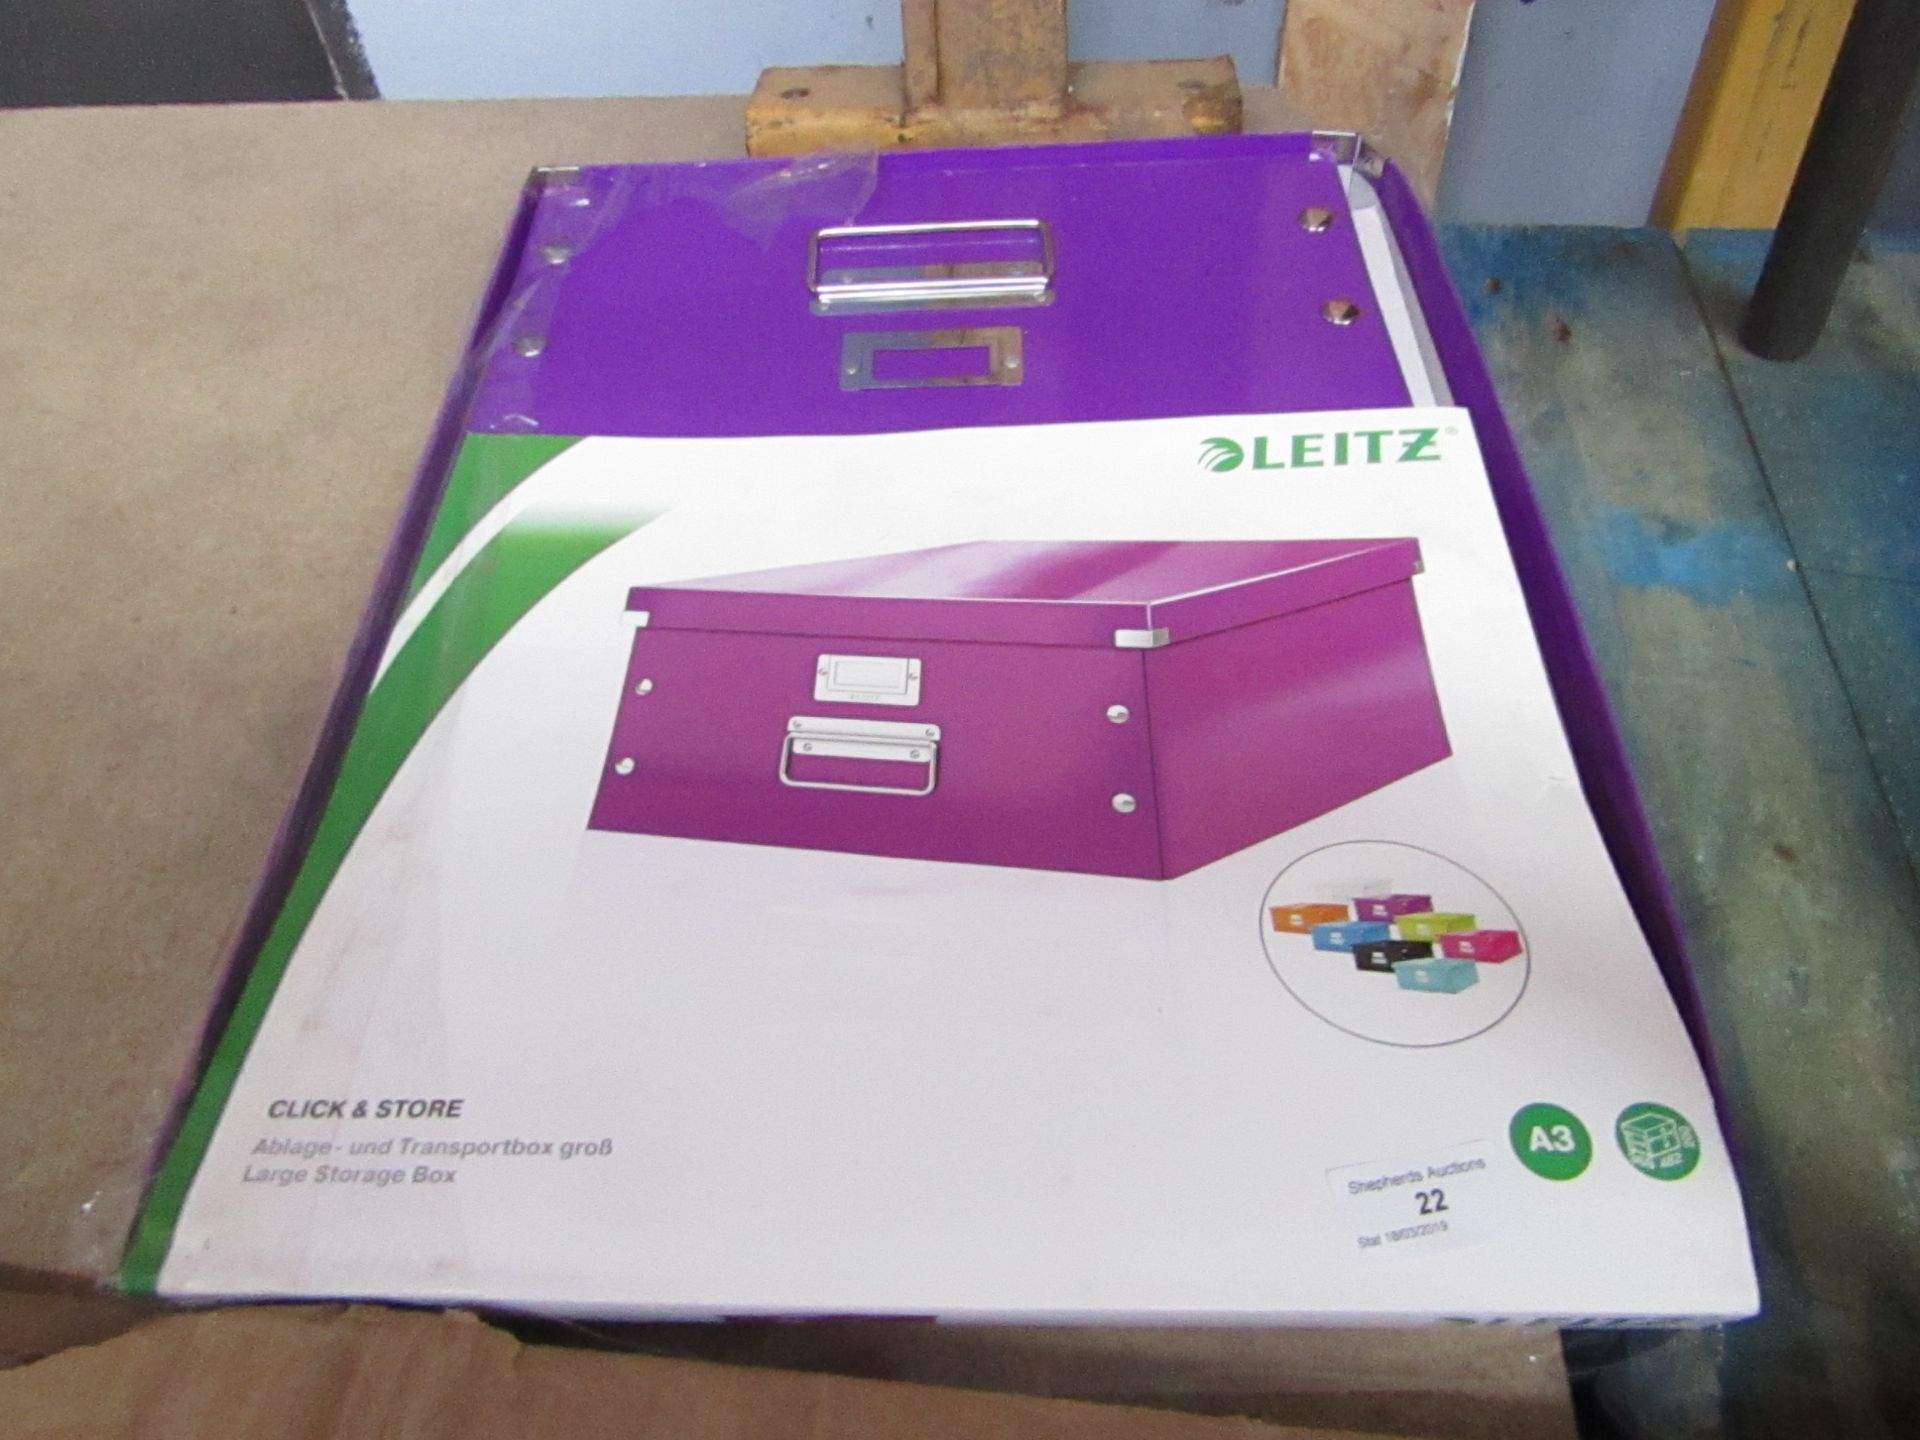 Lot 22 - Leitz Click and Store Large storage box